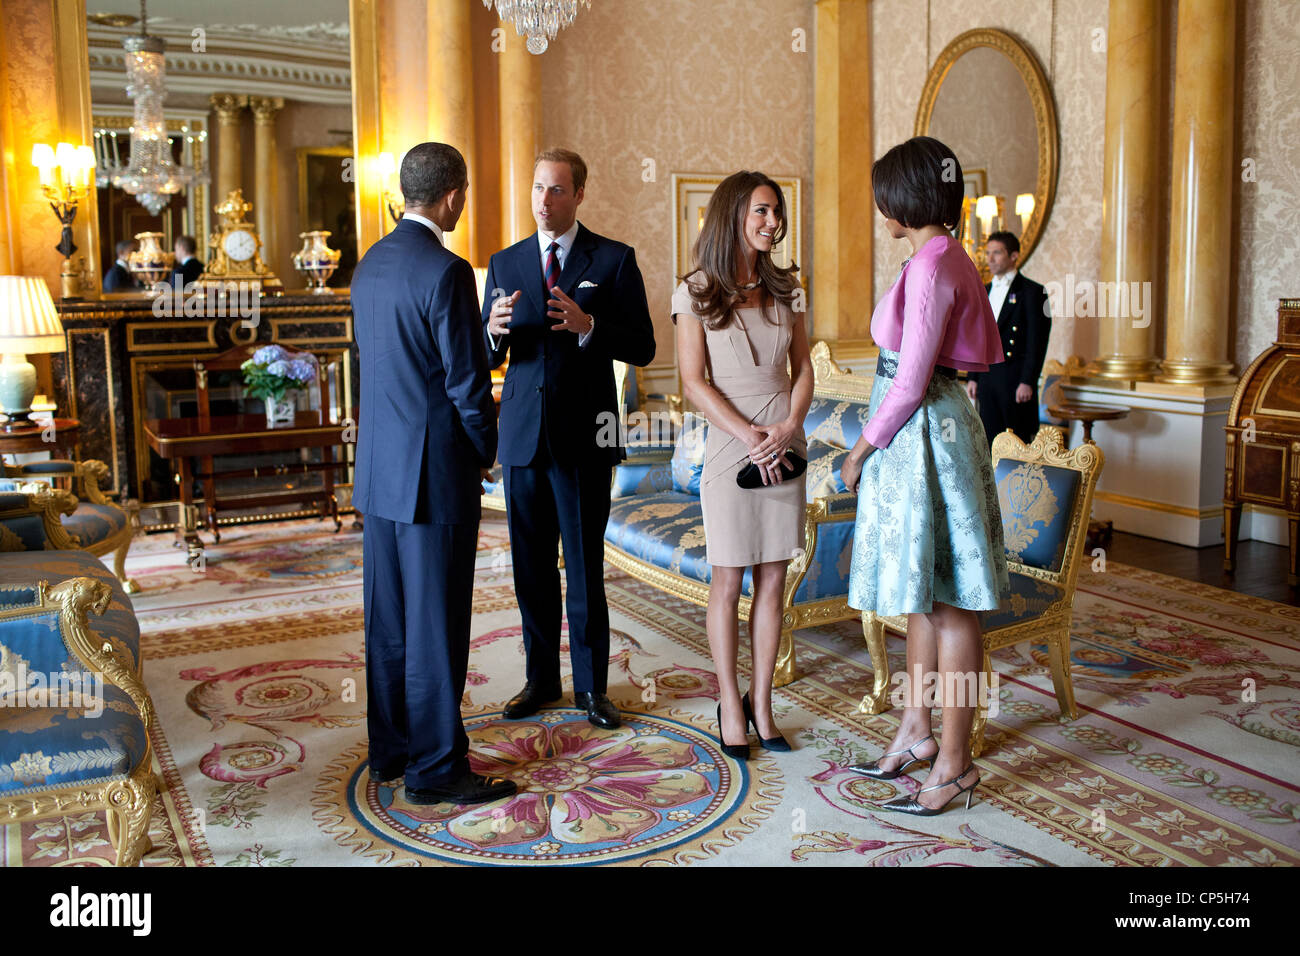 President Barack Obama and First Lady Michelle Obama talk with the Duke and Duchess of Cambridge in the 1844 Room - Stock Image